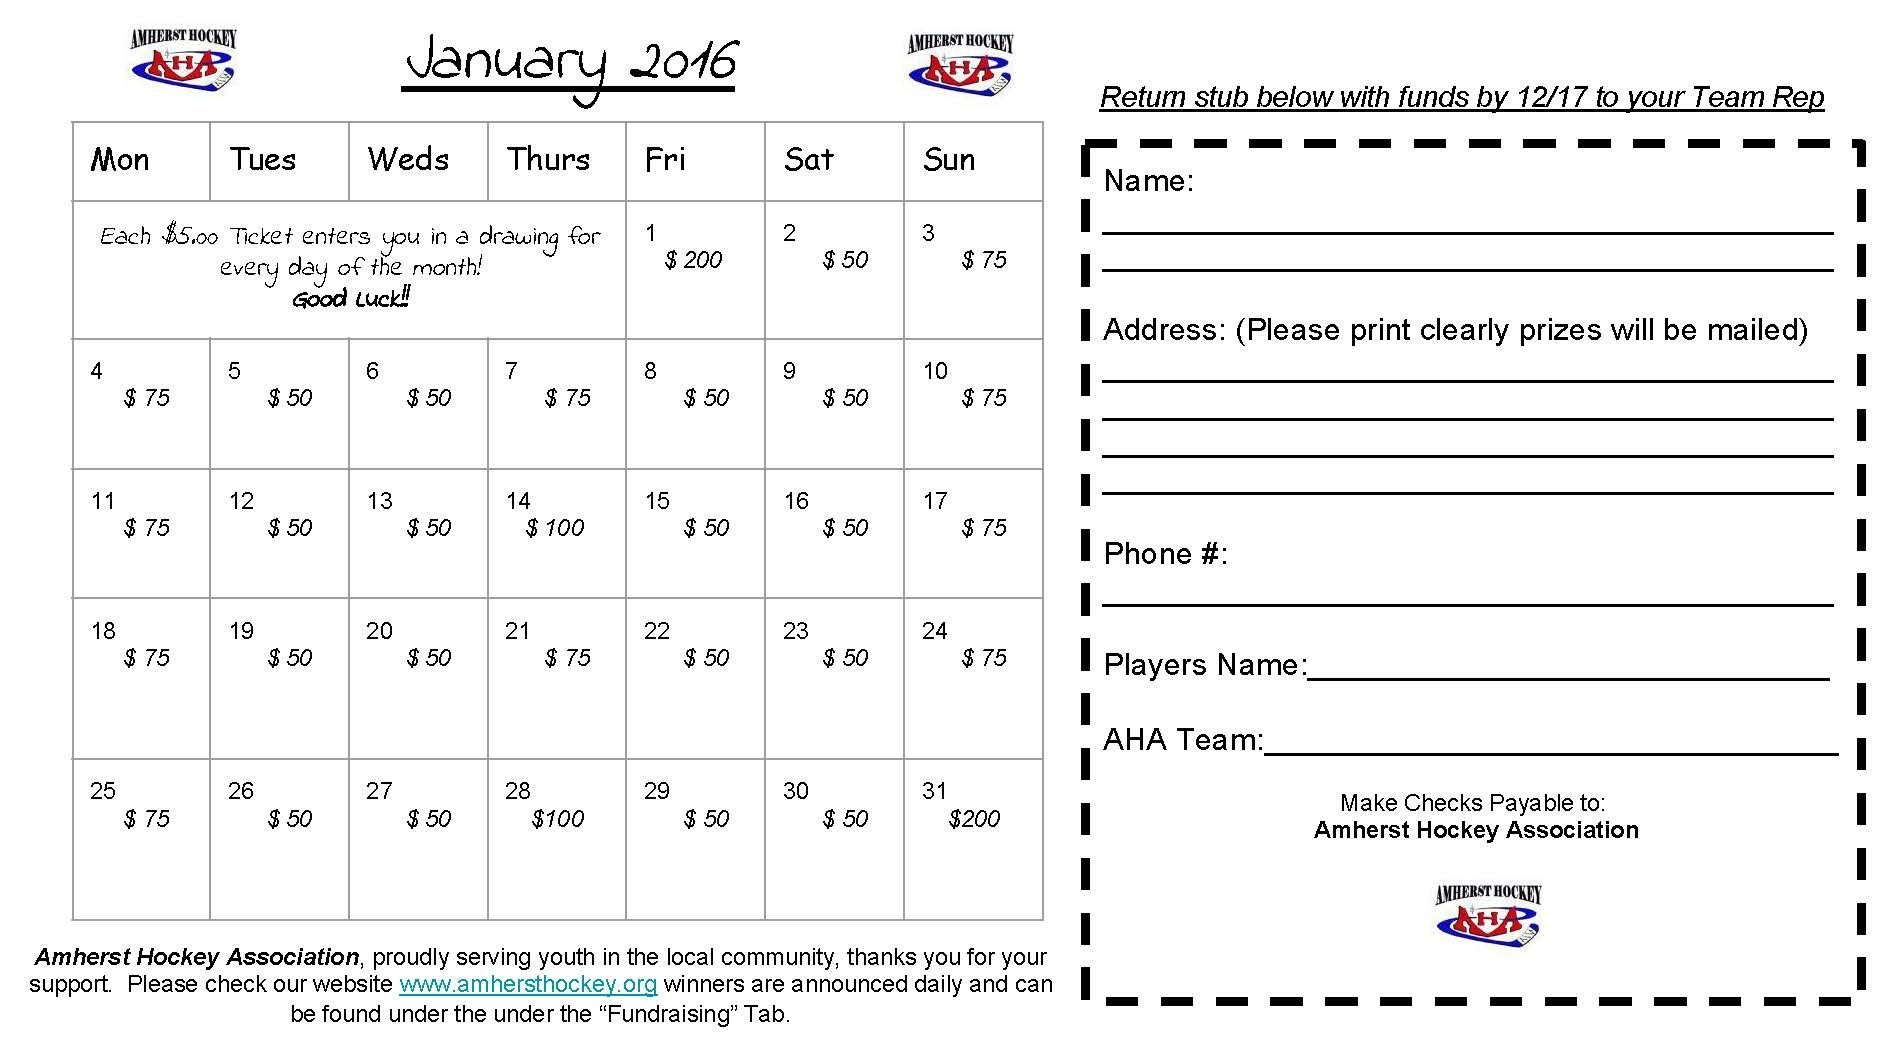 2015 2016 Calendar Raffle | Amherst Hockey Association